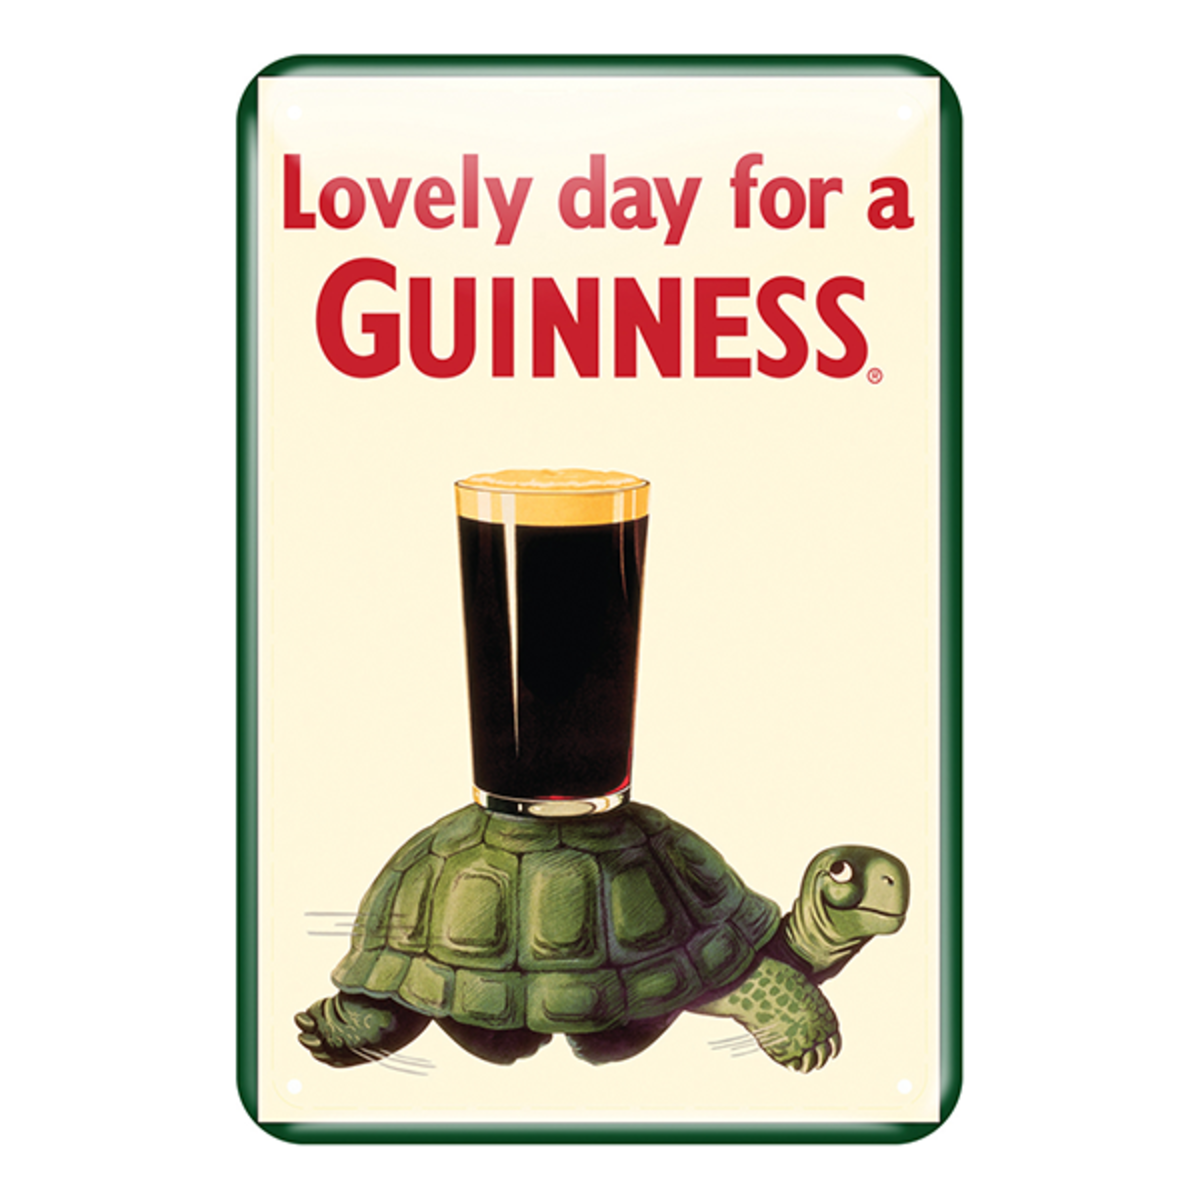 Many people associate Guinness with Saint Patrick's Day.